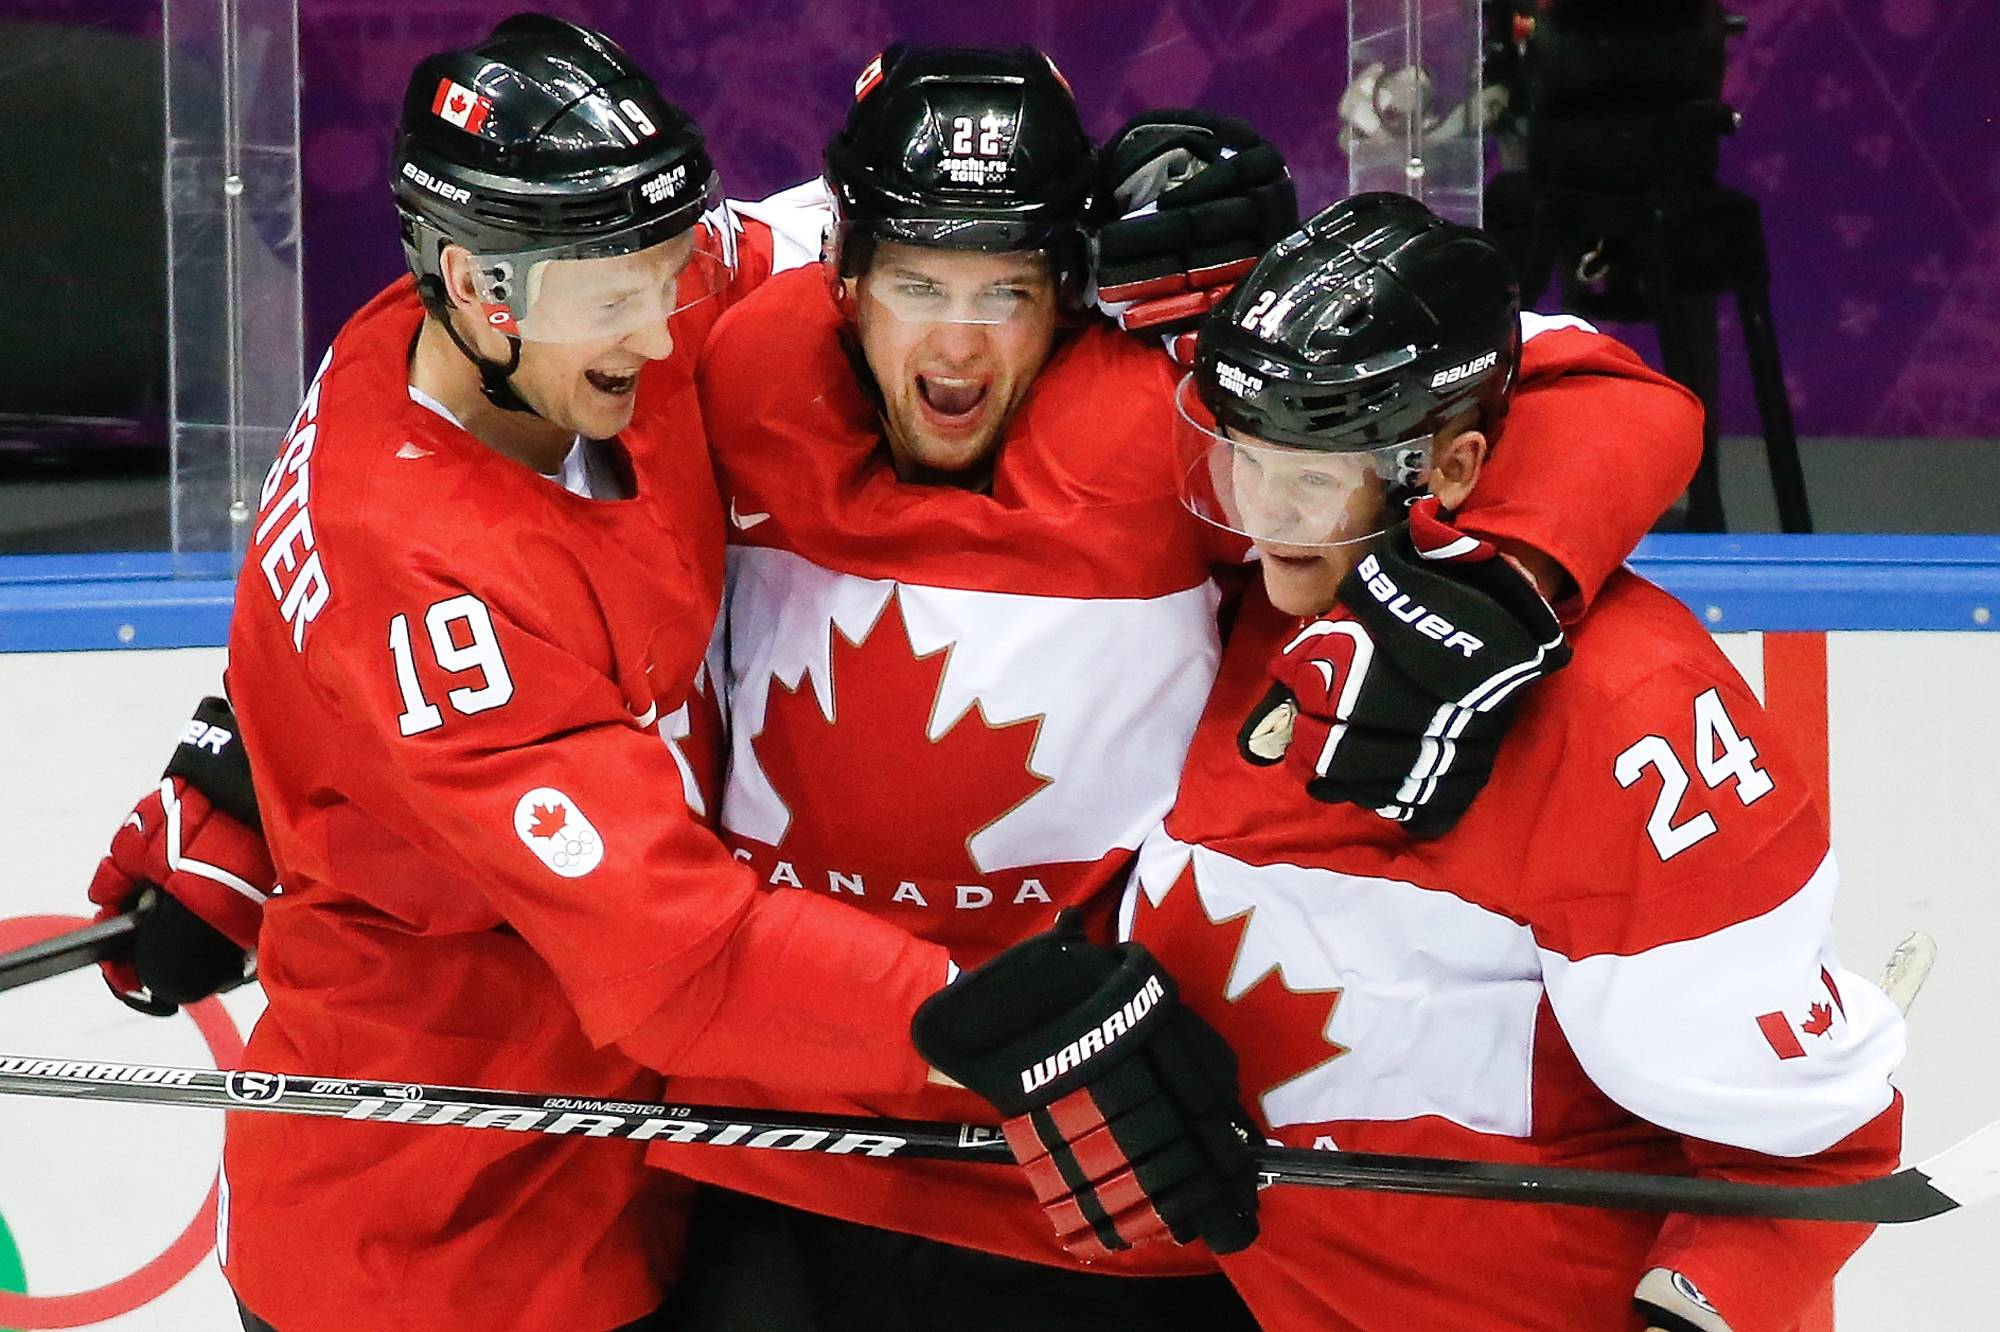 Canada forward Benn Jamie, center, celebrates his goal against the USA with teammates Jay Bouwmeester, left, and Corey Perry, right, during the second period.